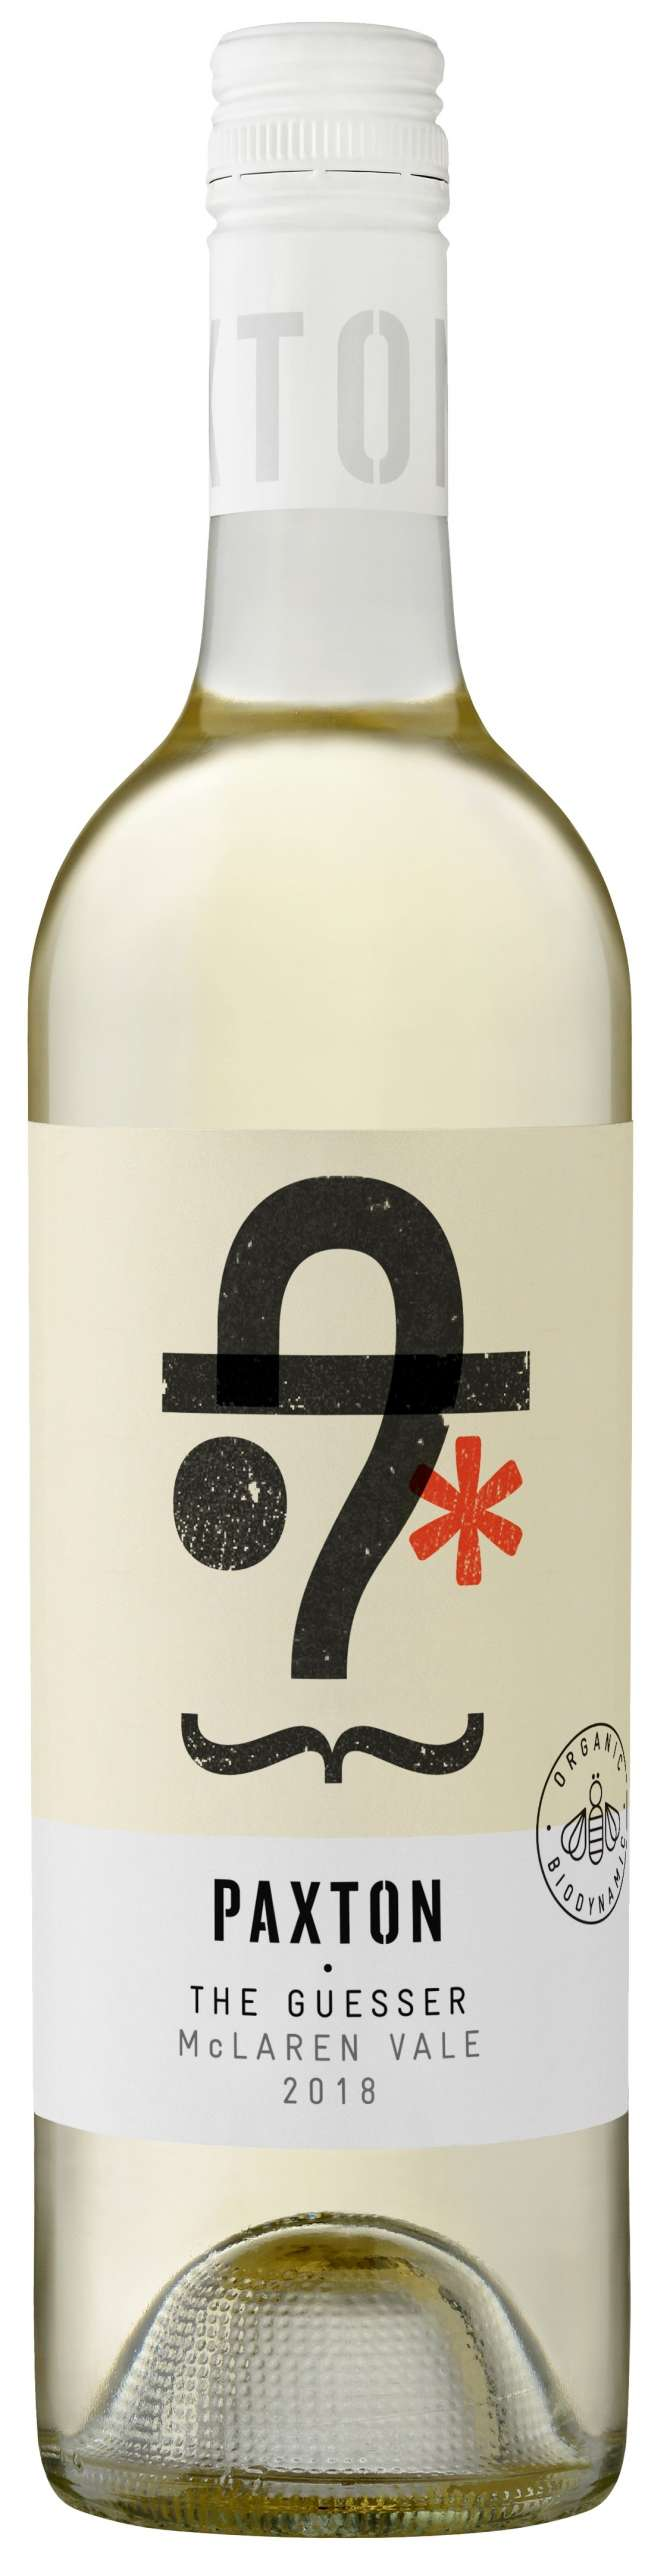 Paxton 'The Guesser' Organic White Blend 2018-0